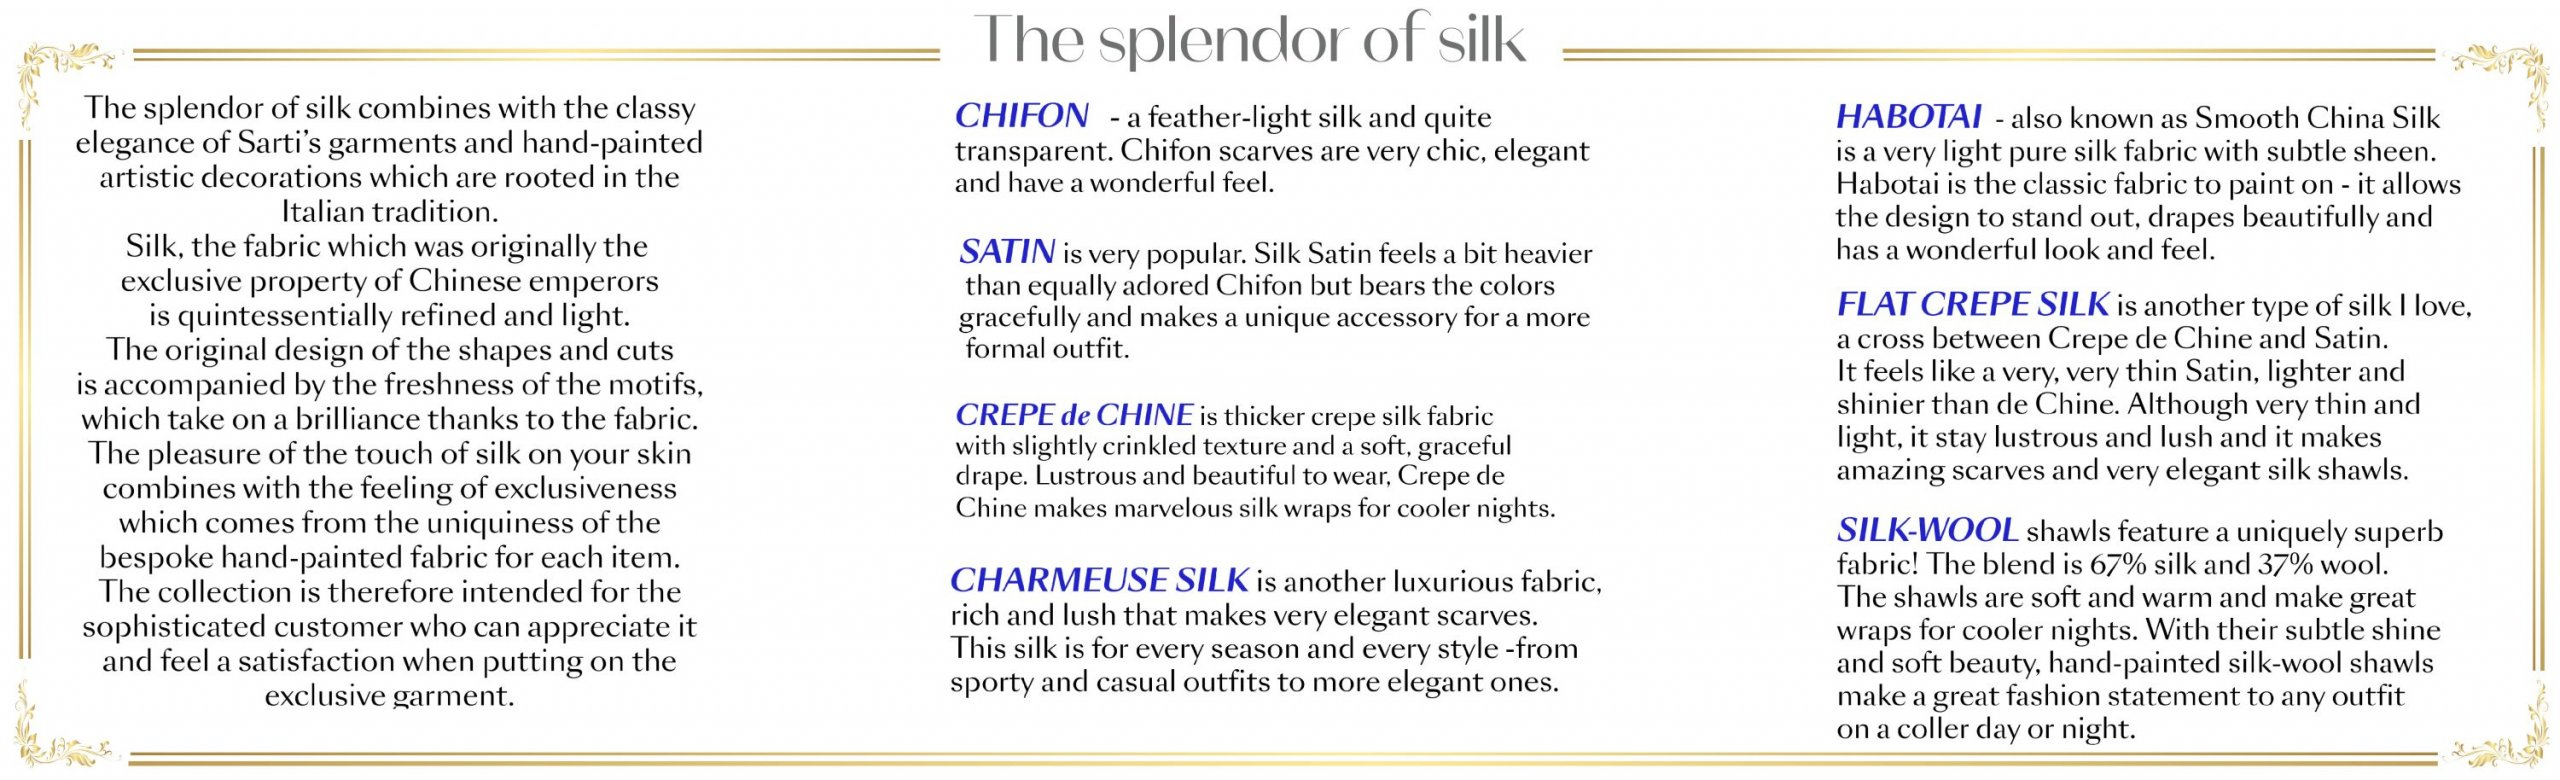 THE-SPLENDOR-OF-SILK-01-e1566058657563-scaled